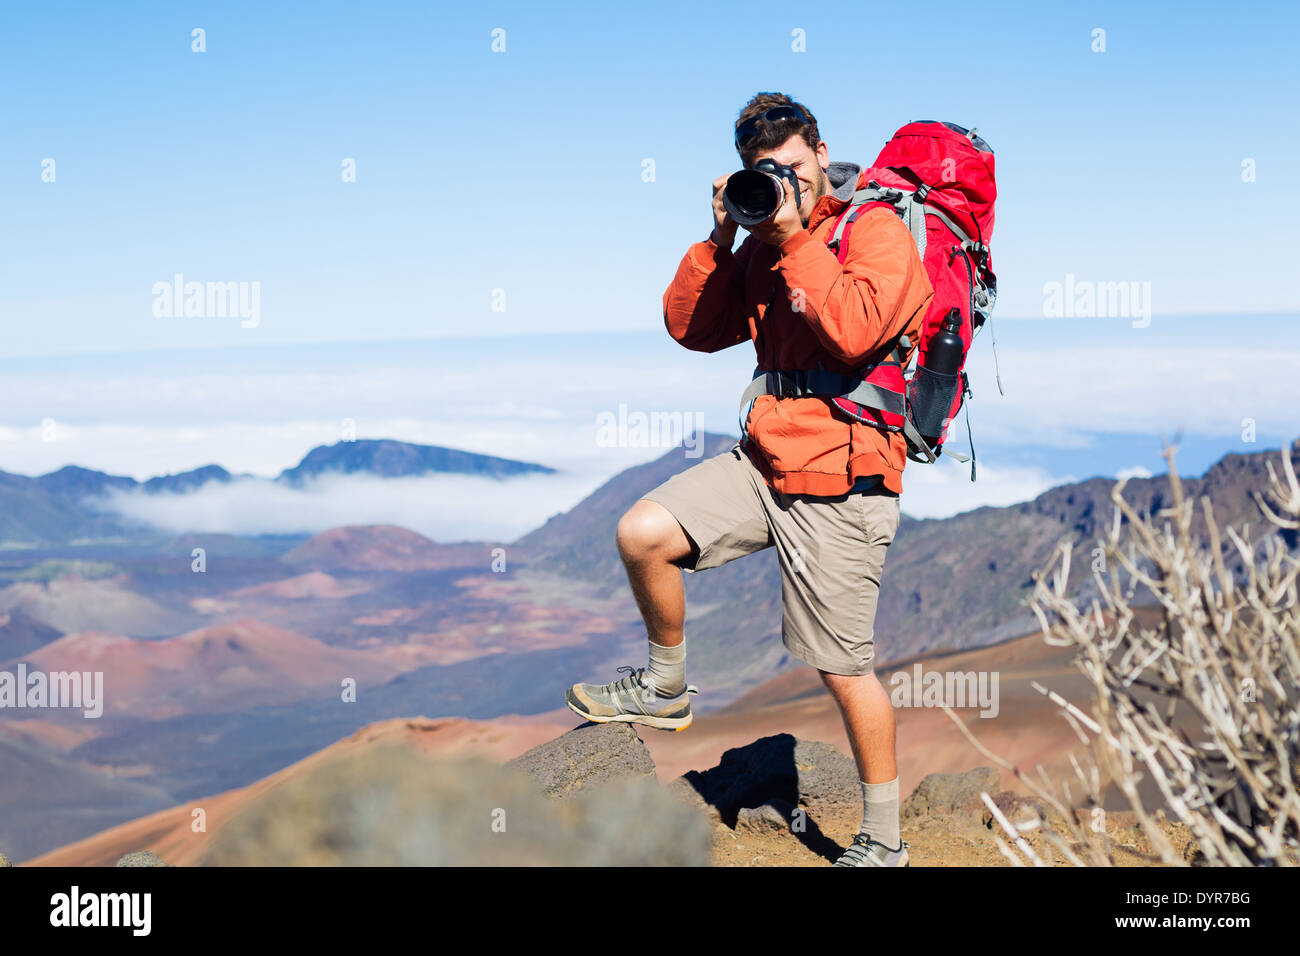 Photographer taking pictures outdoors on hiking trip. Outdoor nature photography. - Stock Image